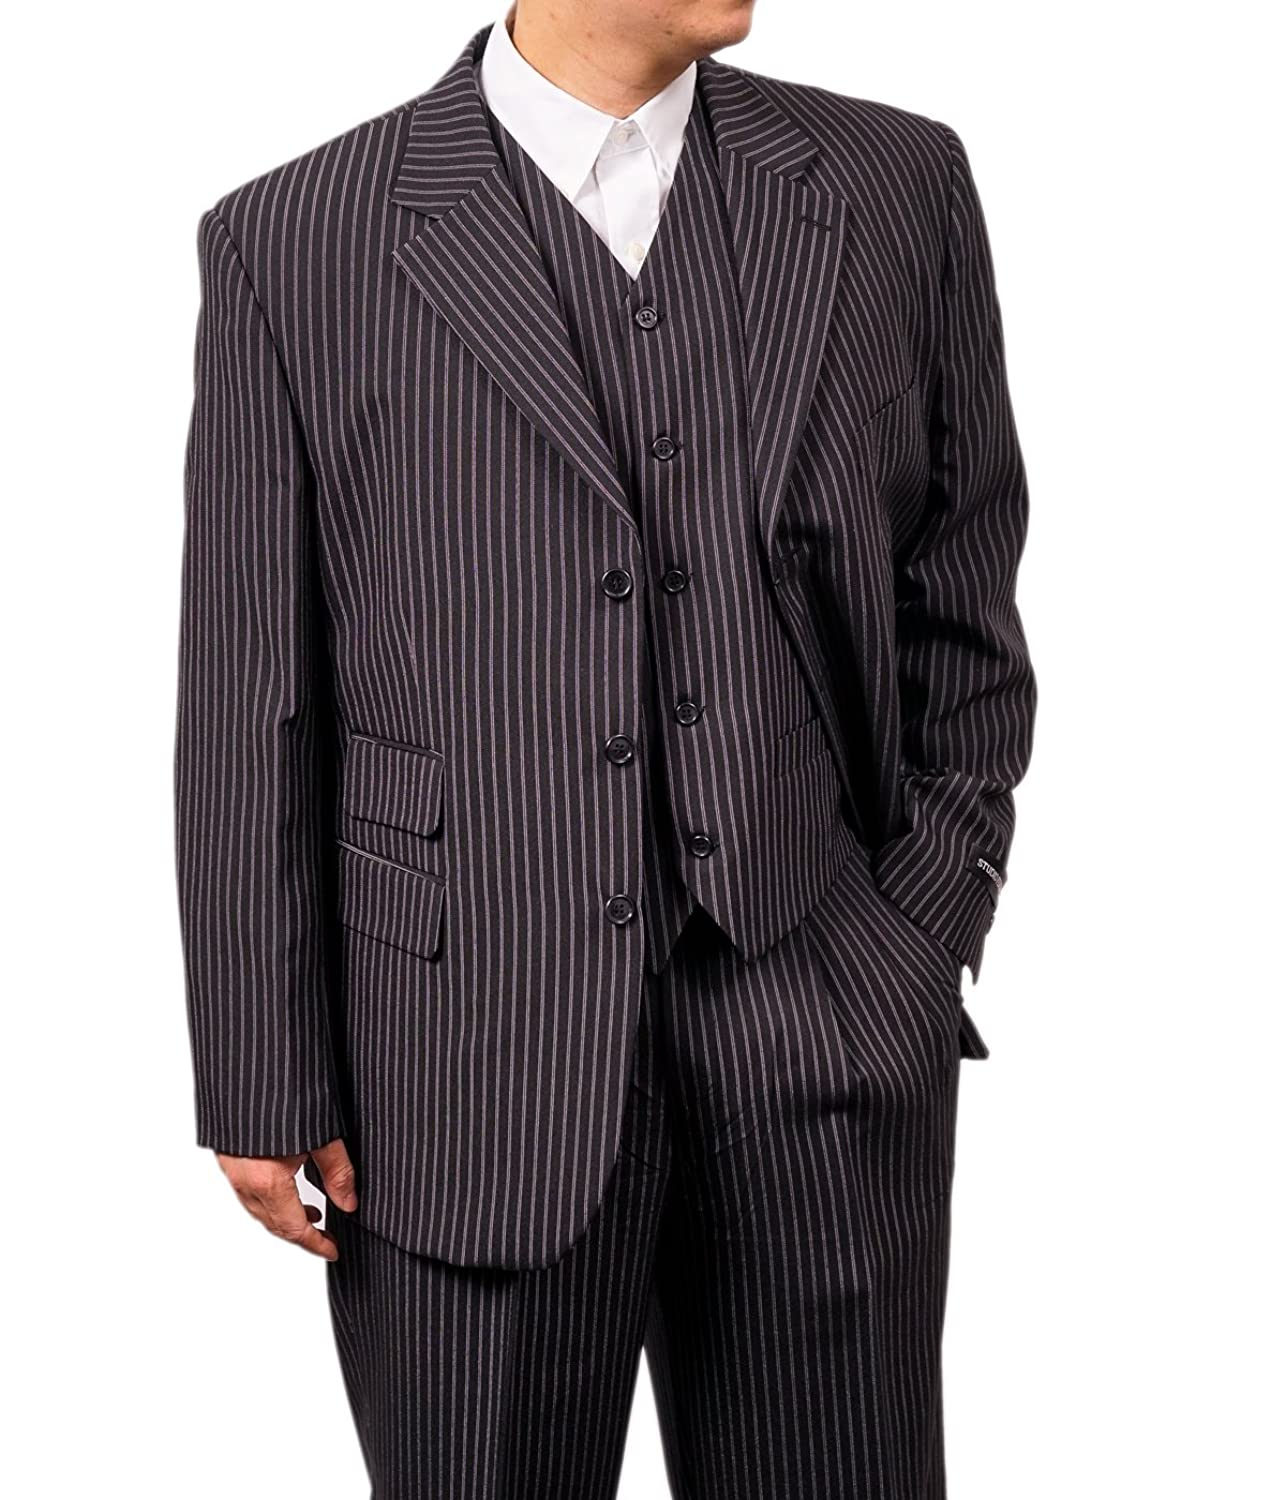 Men's Vintage Style Suits, Classic Suits New Mens 3 Piece Black Gangster Pinstripe Dress Suit with Matching Vest $119.99 AT vintagedancer.com